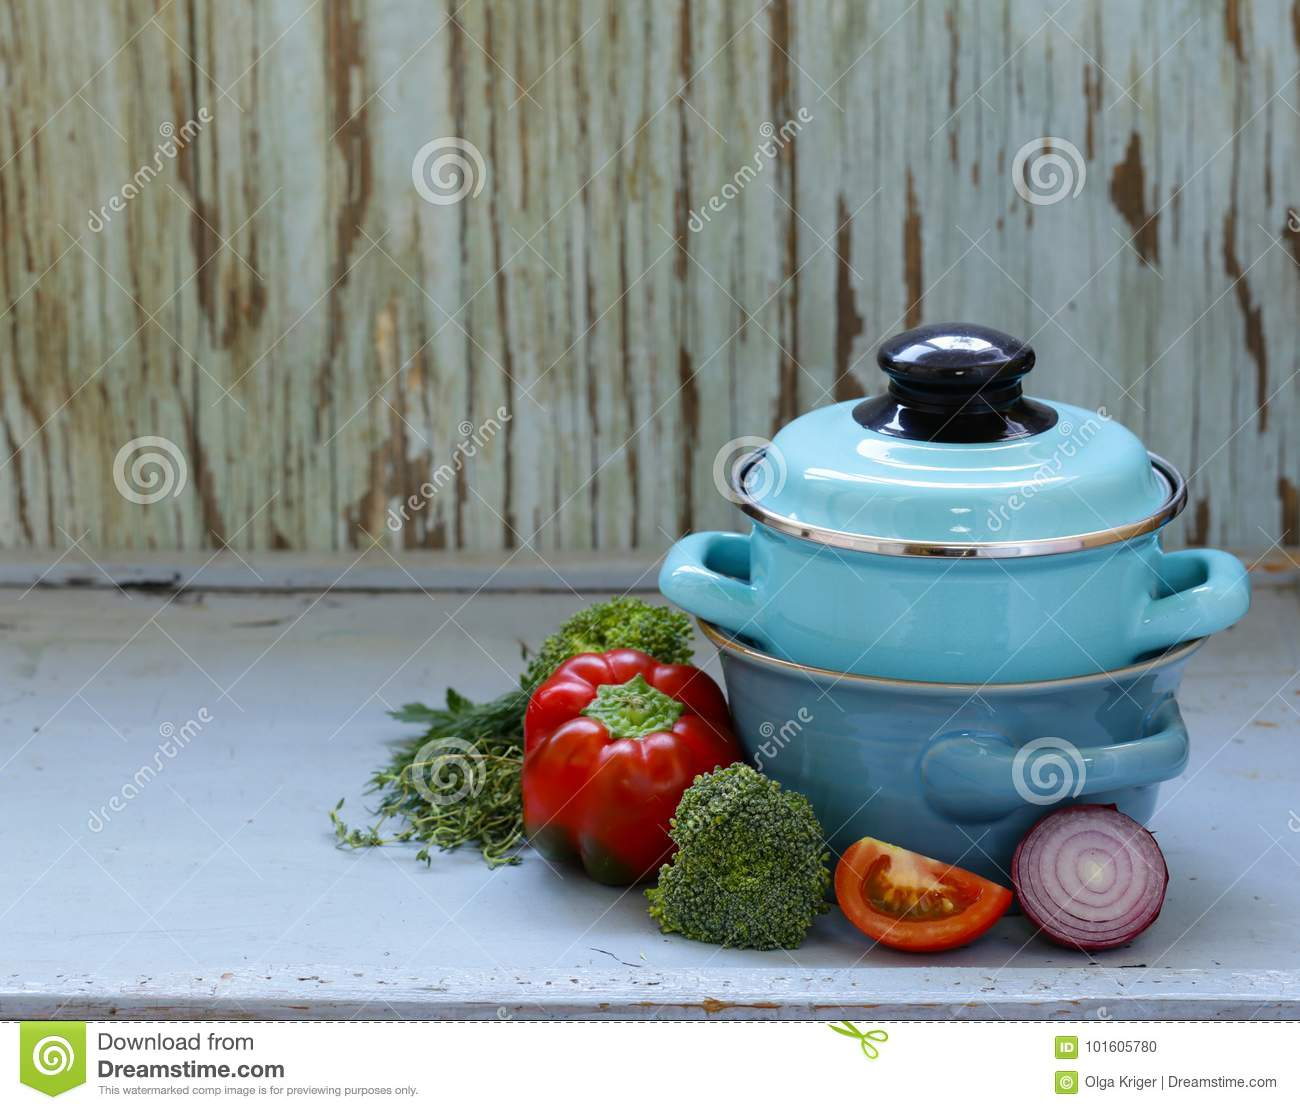 Kitchen Utensils, Cooking Pans On A Wooden Background Stock Photo ...